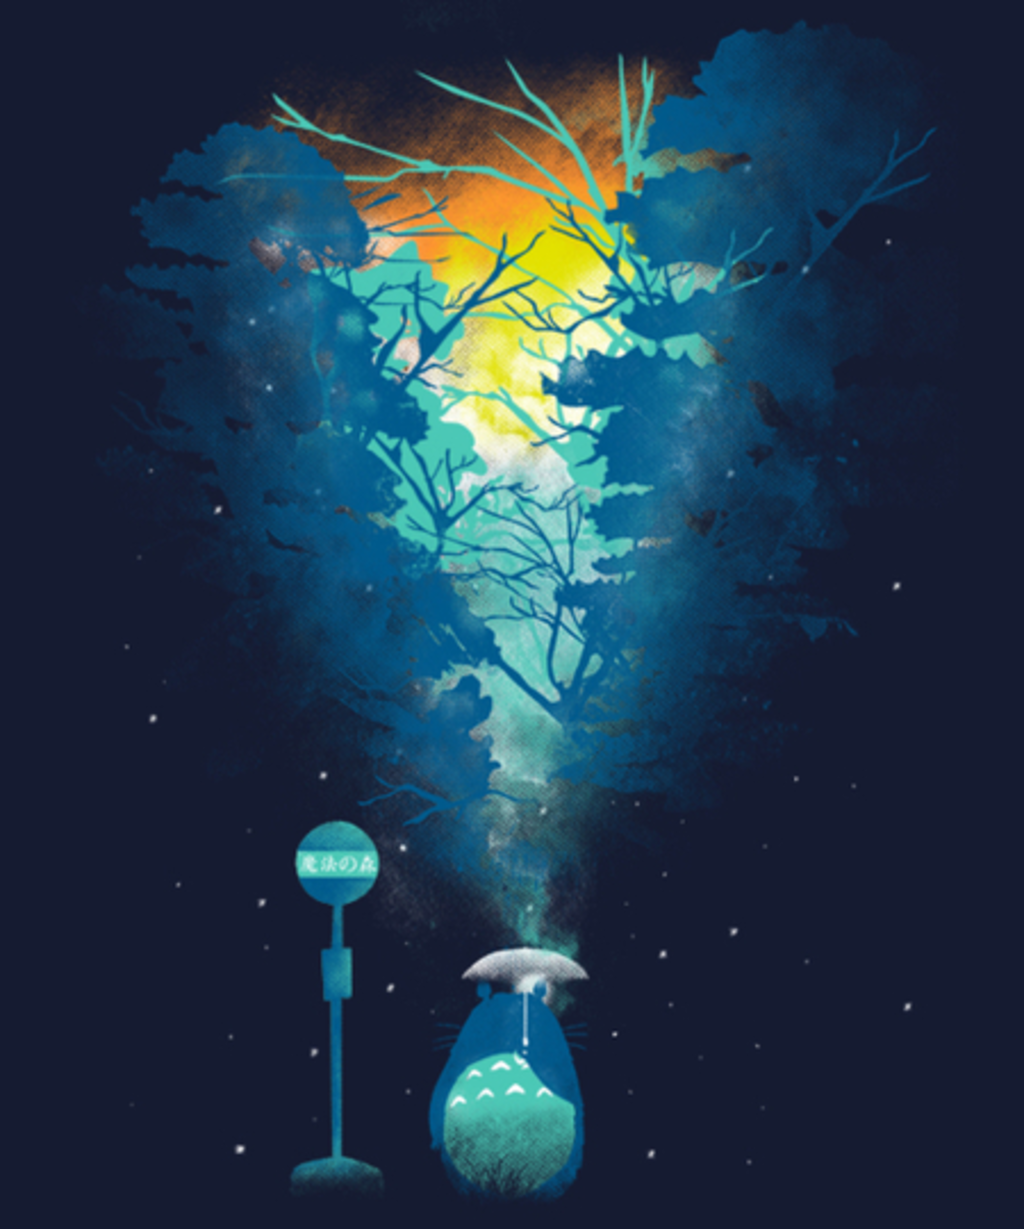 Qwertee: Magical bus stop